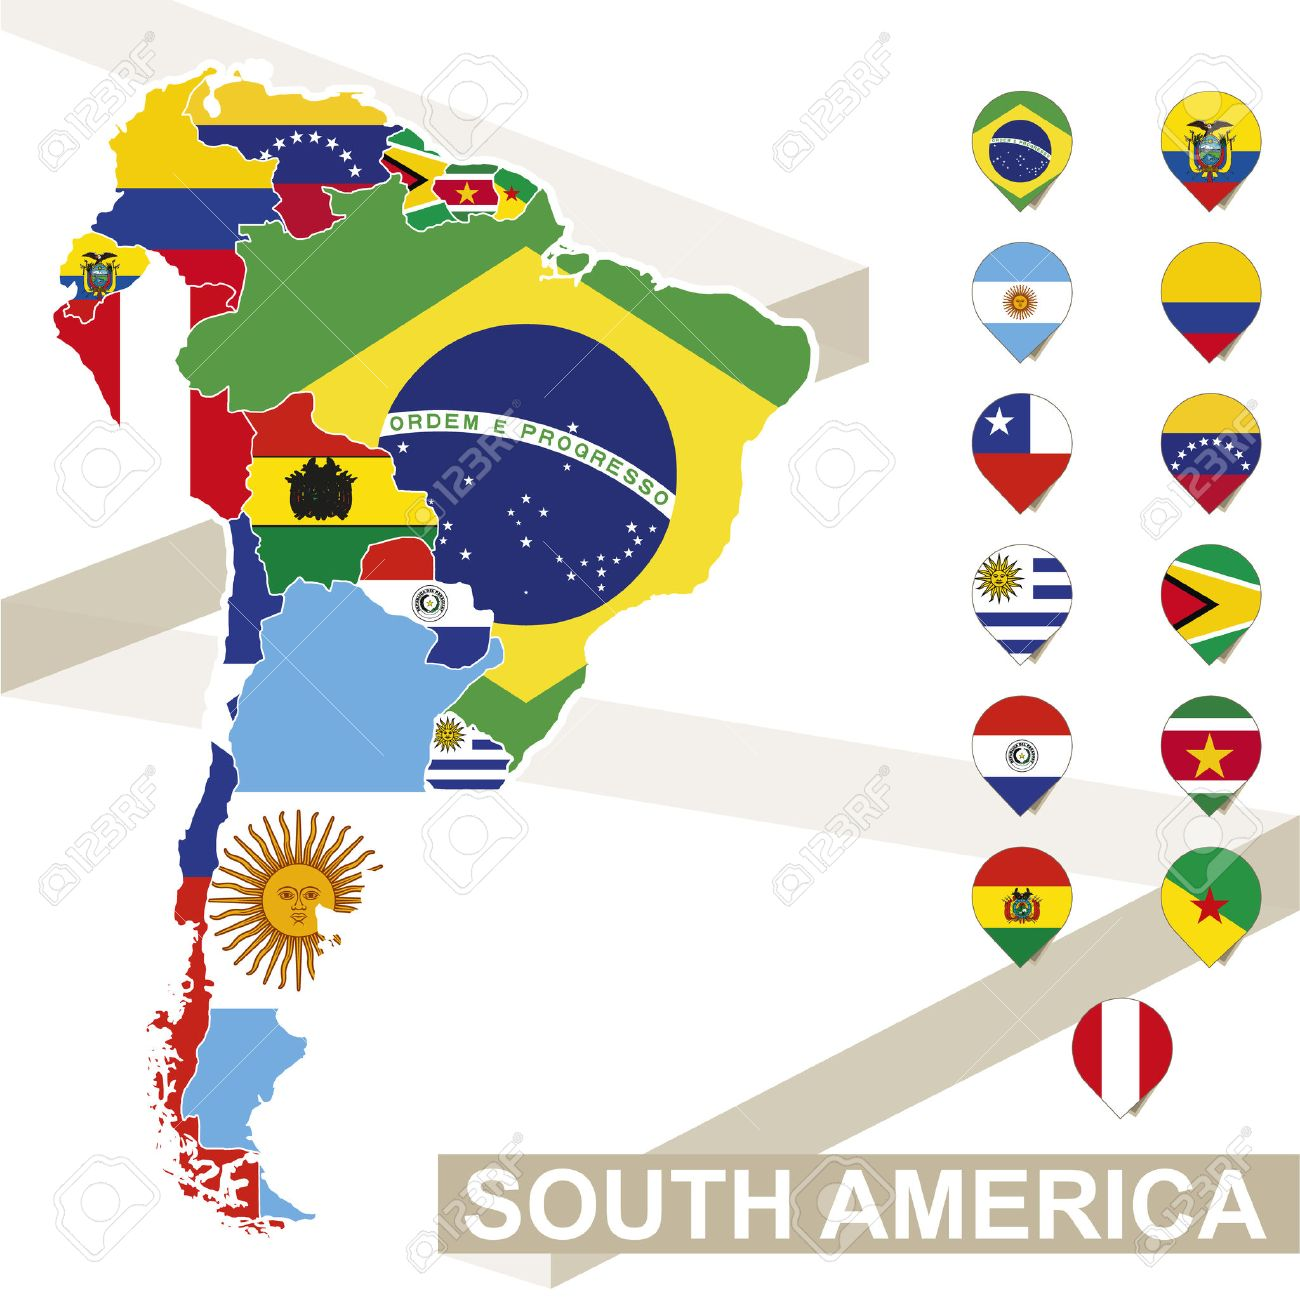 America Map.South America Map With Flags South America Map Colored In With